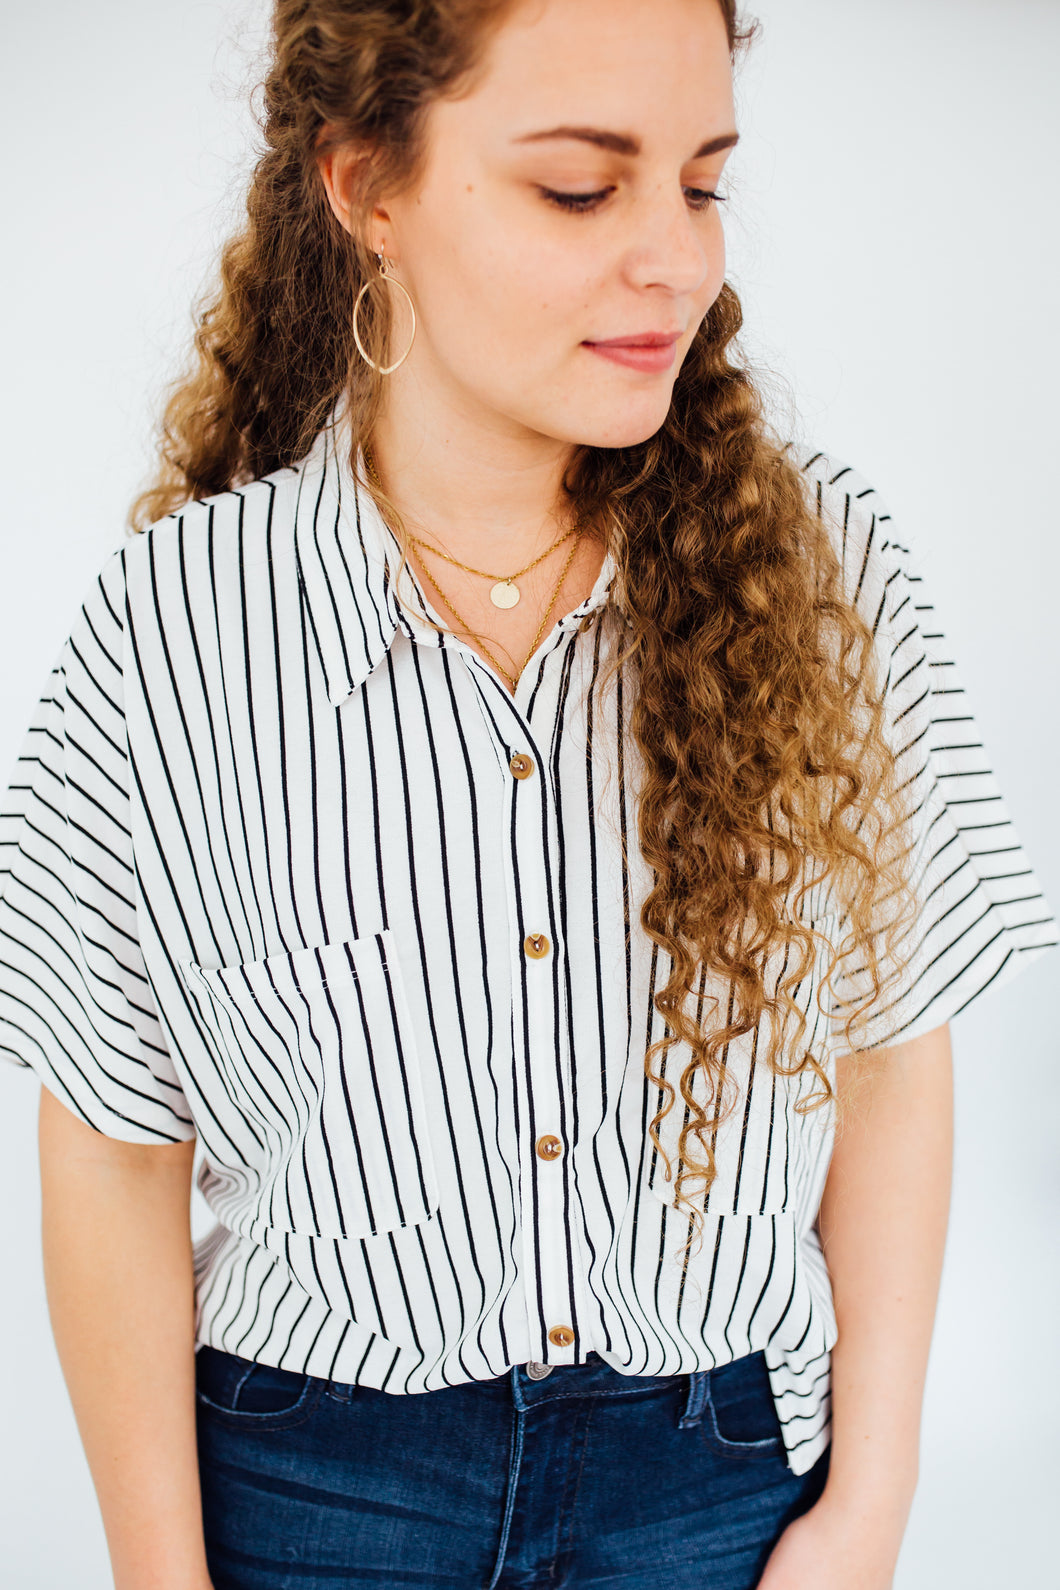 The Reece Striped Button Up in Ivory